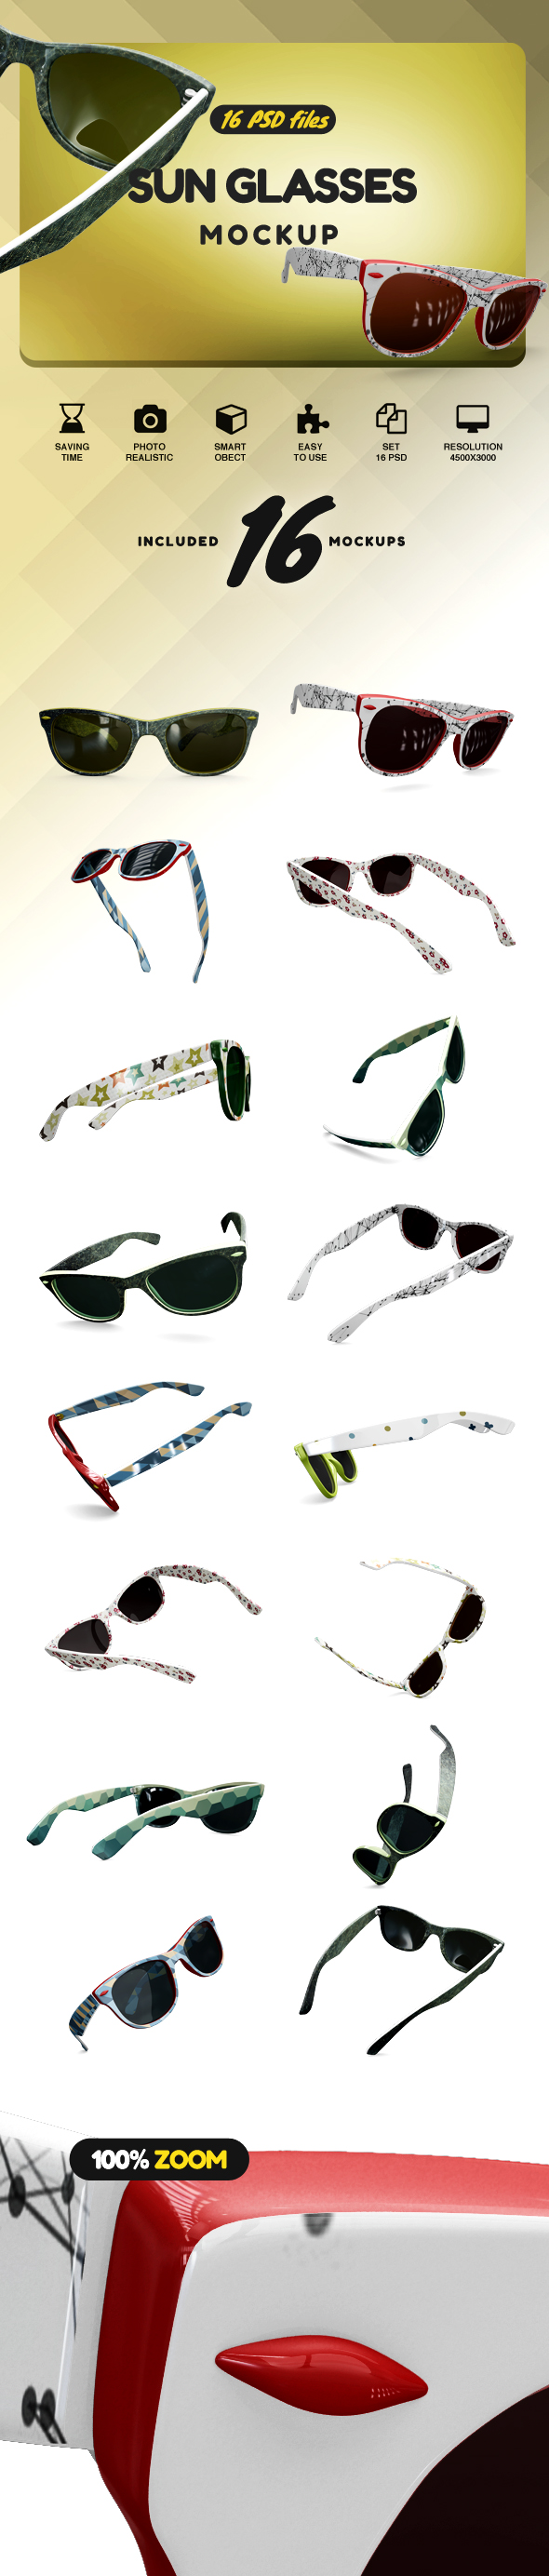 Sun Glasses Mockup example image 2